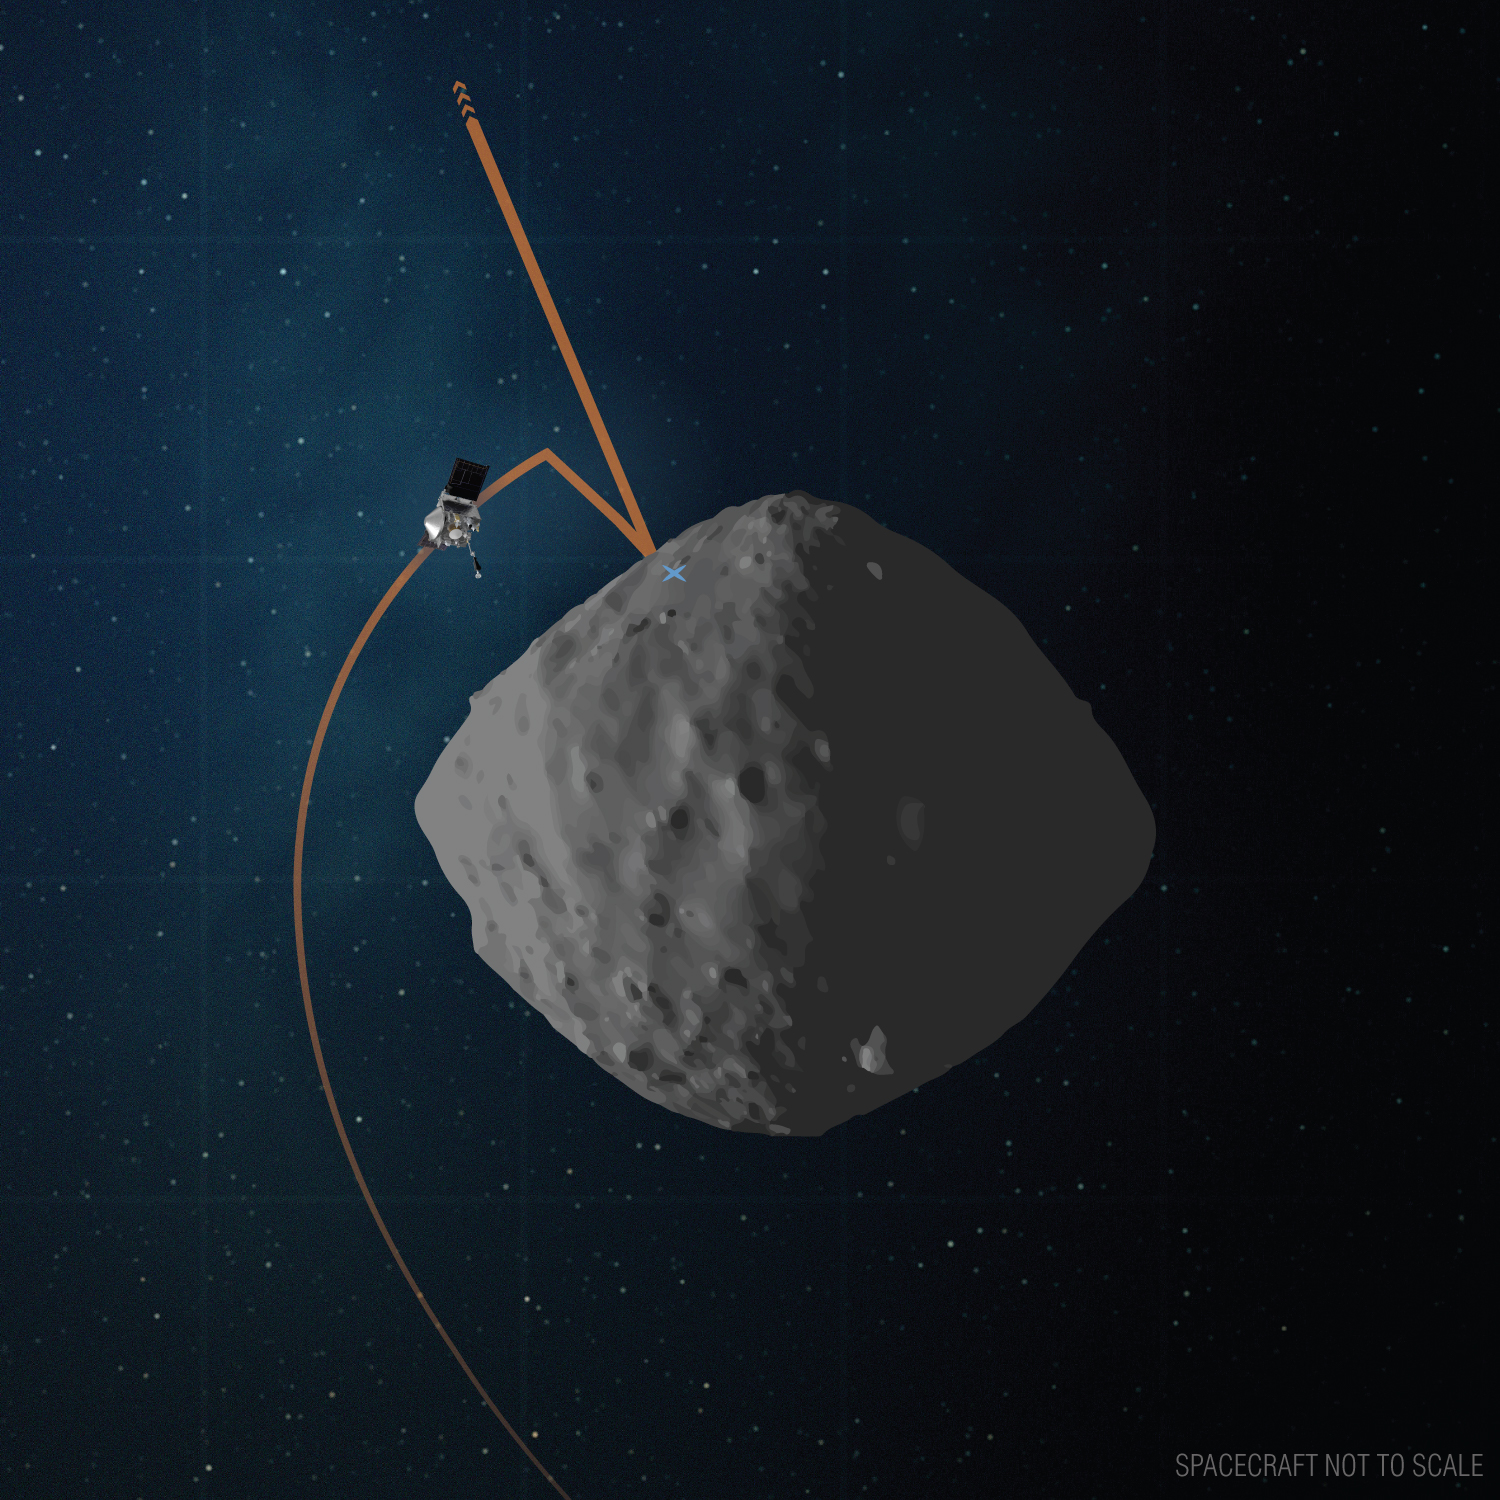 OSIRIS-REx and Bennu